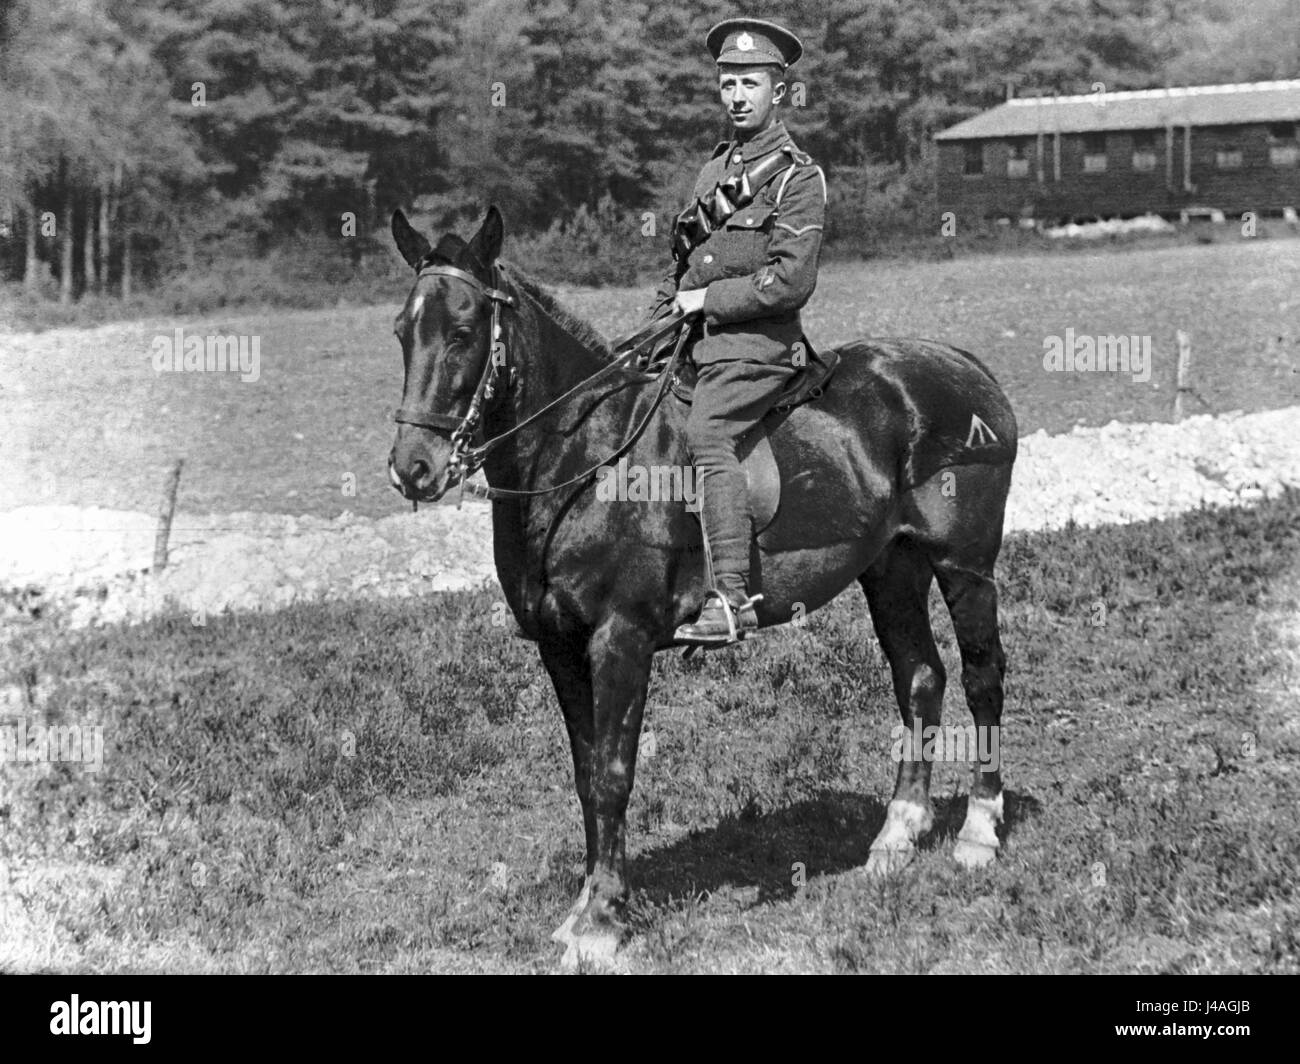 Portrait of a mounted British soldier, a signaler from the Royal Signals Corps - Stock Image